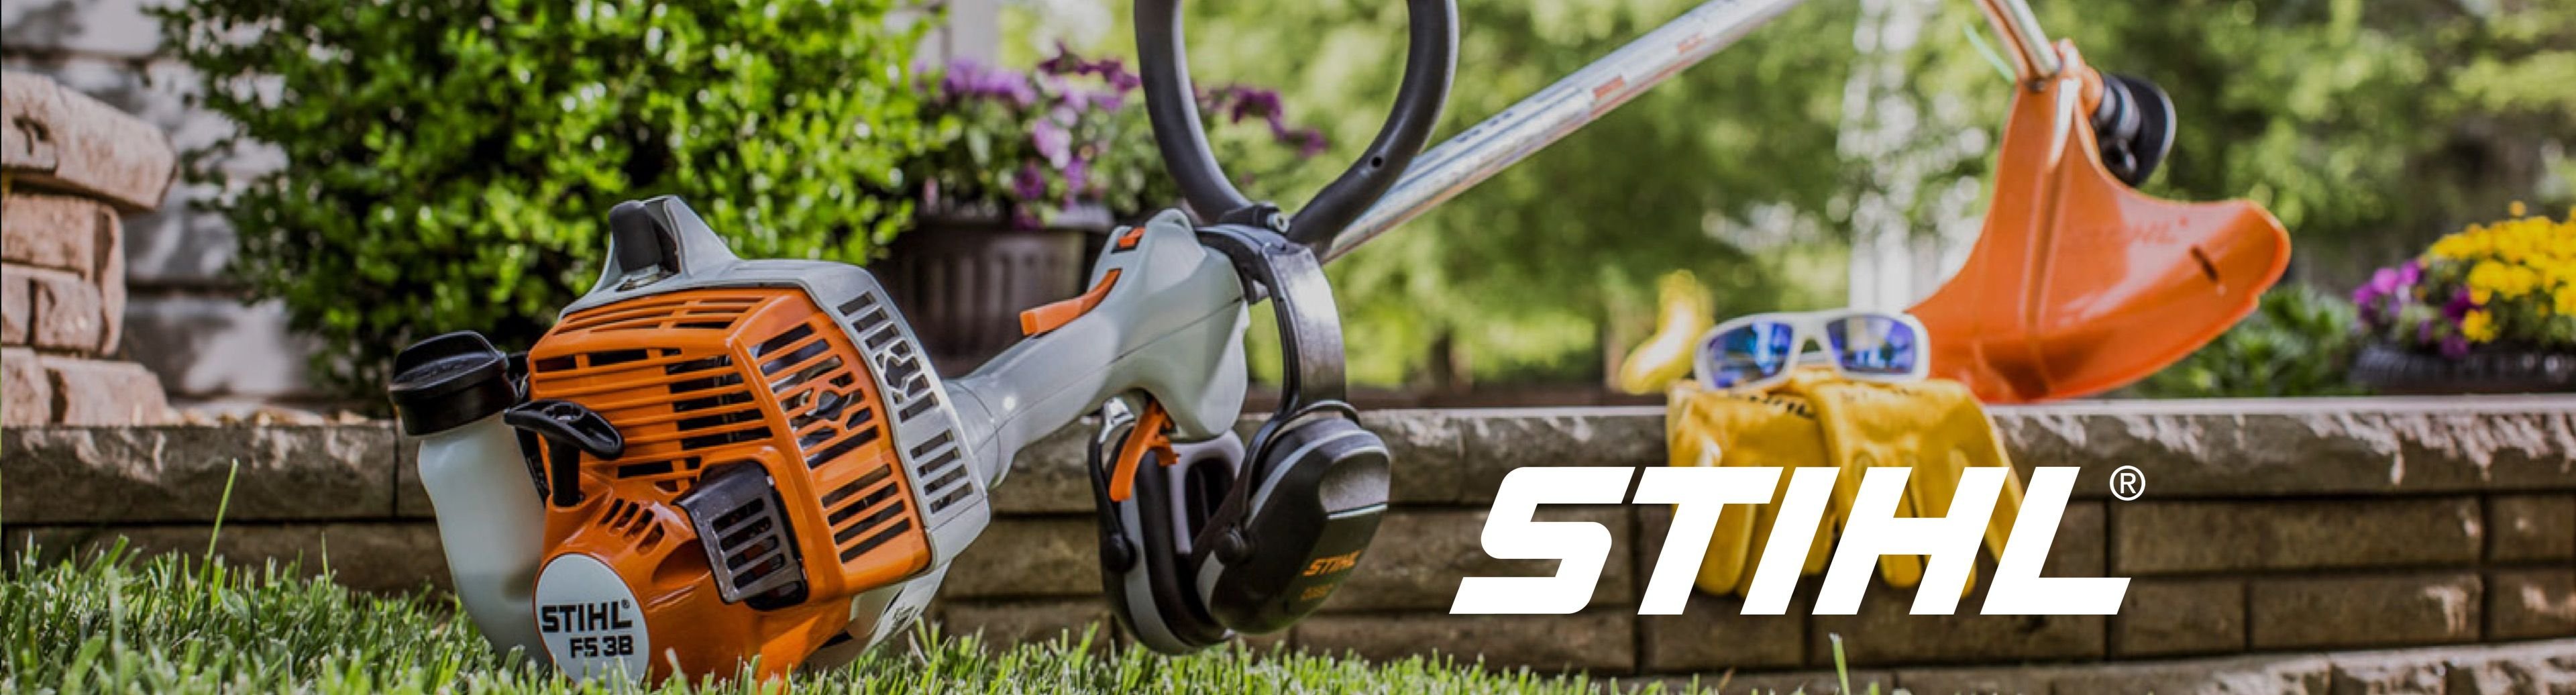 More about Stihl Power Equipment at Karls